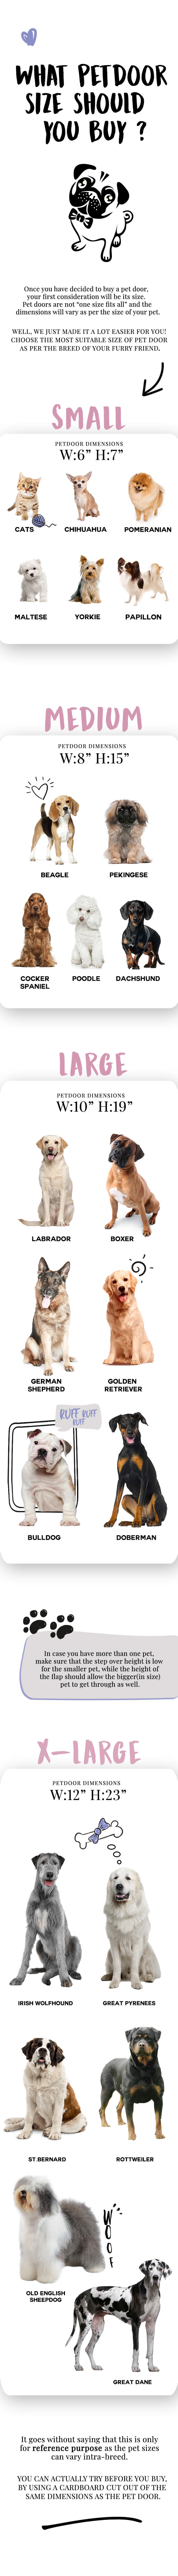 pet-door-sizes-buying-guide-infographic-plaza